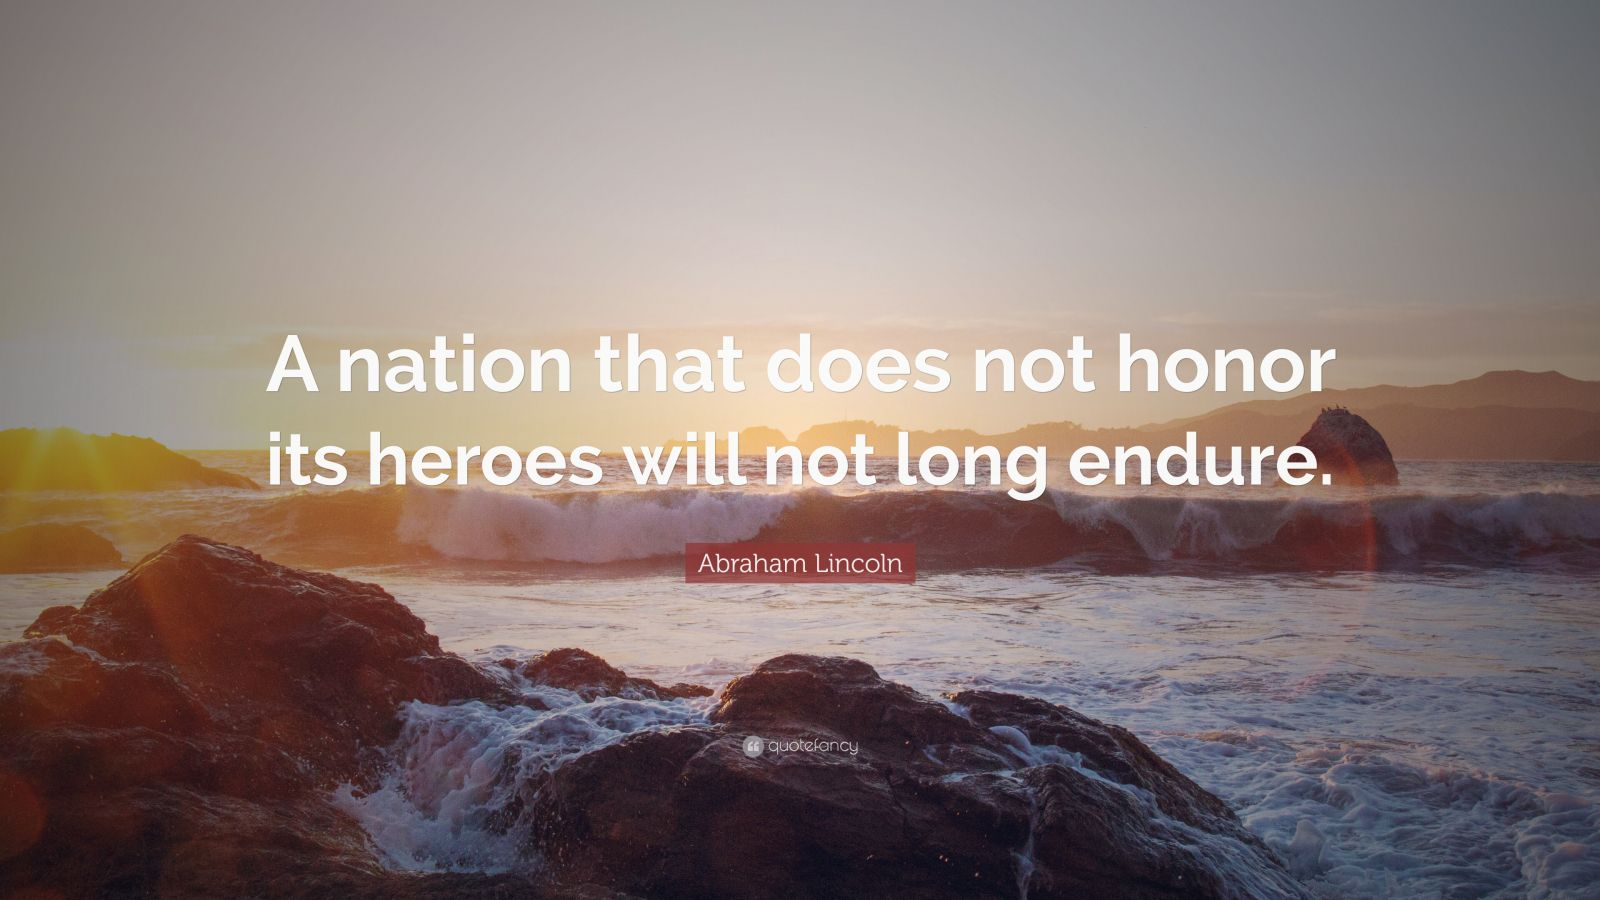 """Abraham Lincoln Quote: """"A nation that does not honor its heroes will not long endure."""""""